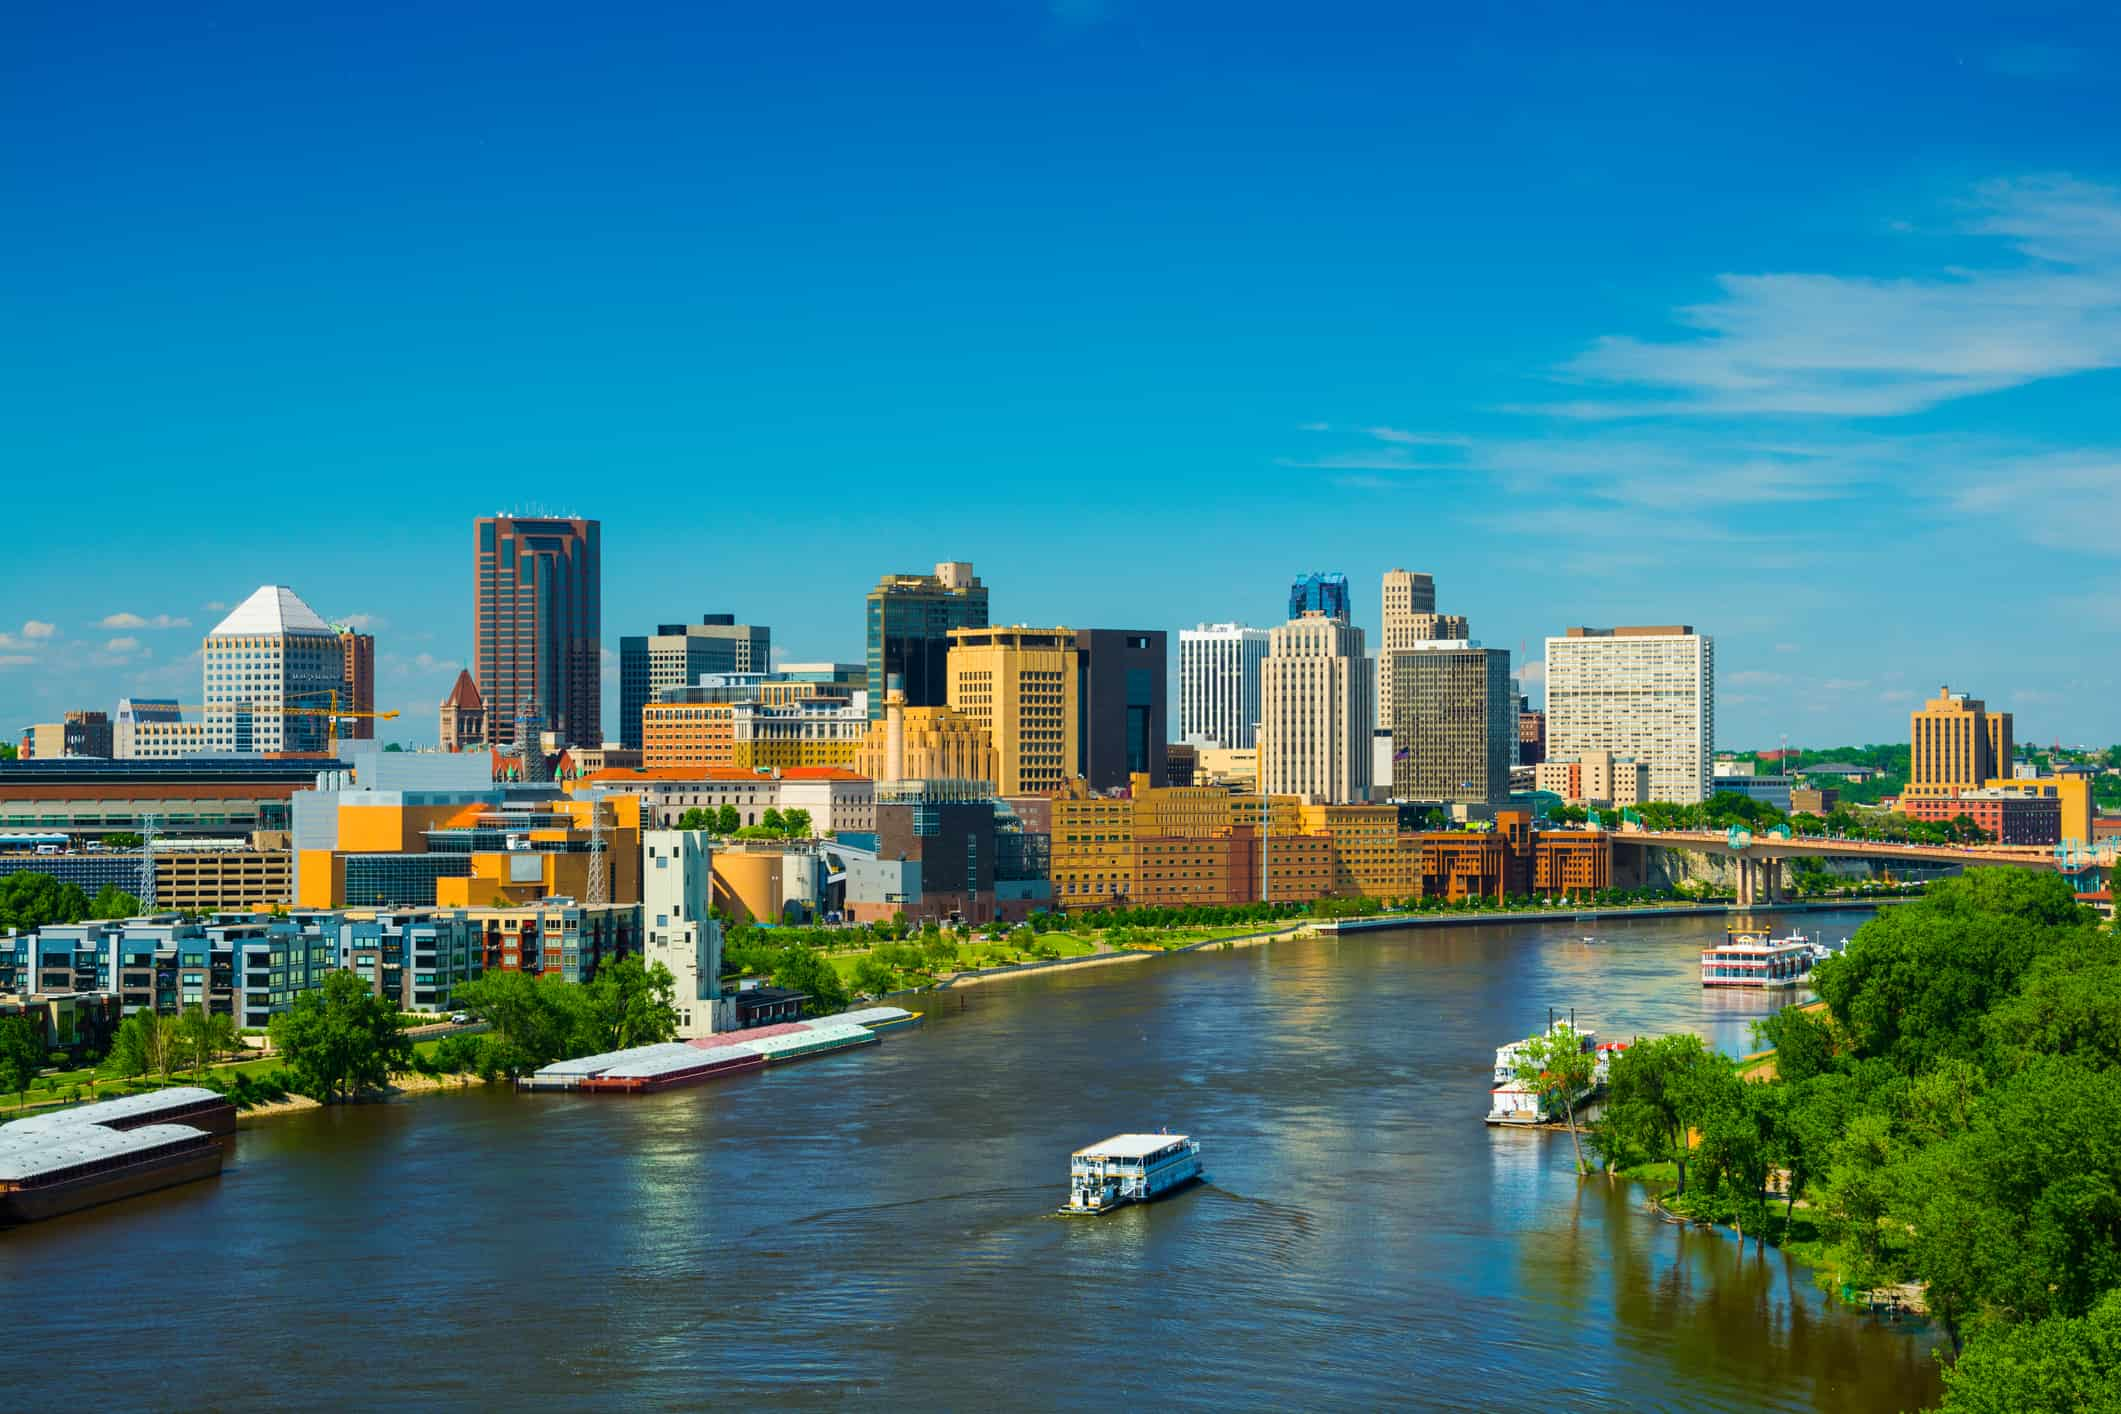 Saint Paul downtown skyline with the Mississippi River in the foreground. Saint Paul is part of the Minneapolis - Saint Paul Twin Cities area.